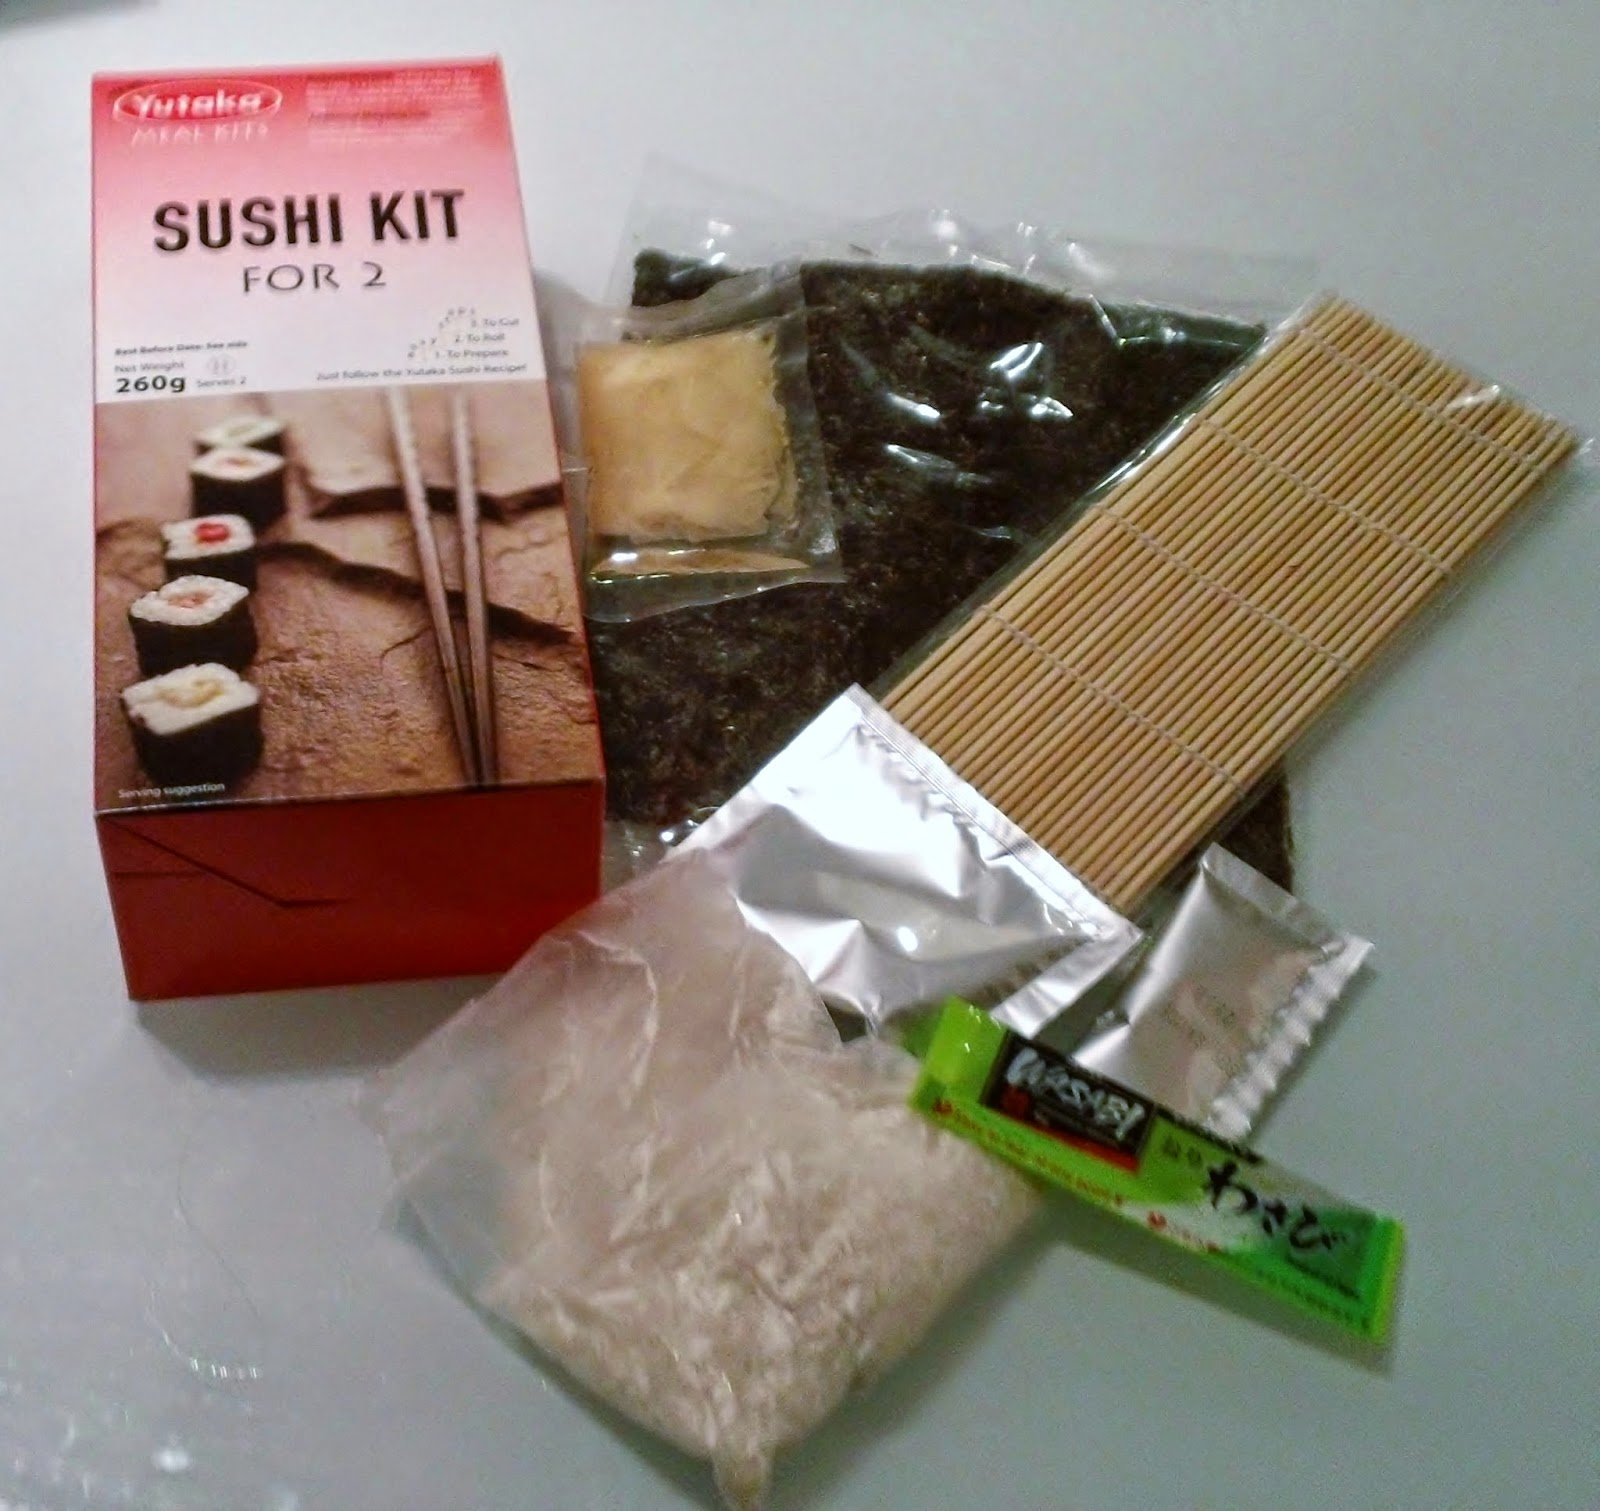 Yutaka Sushi Kit, Sushi Kit, Sushi at Home, Japanese Food